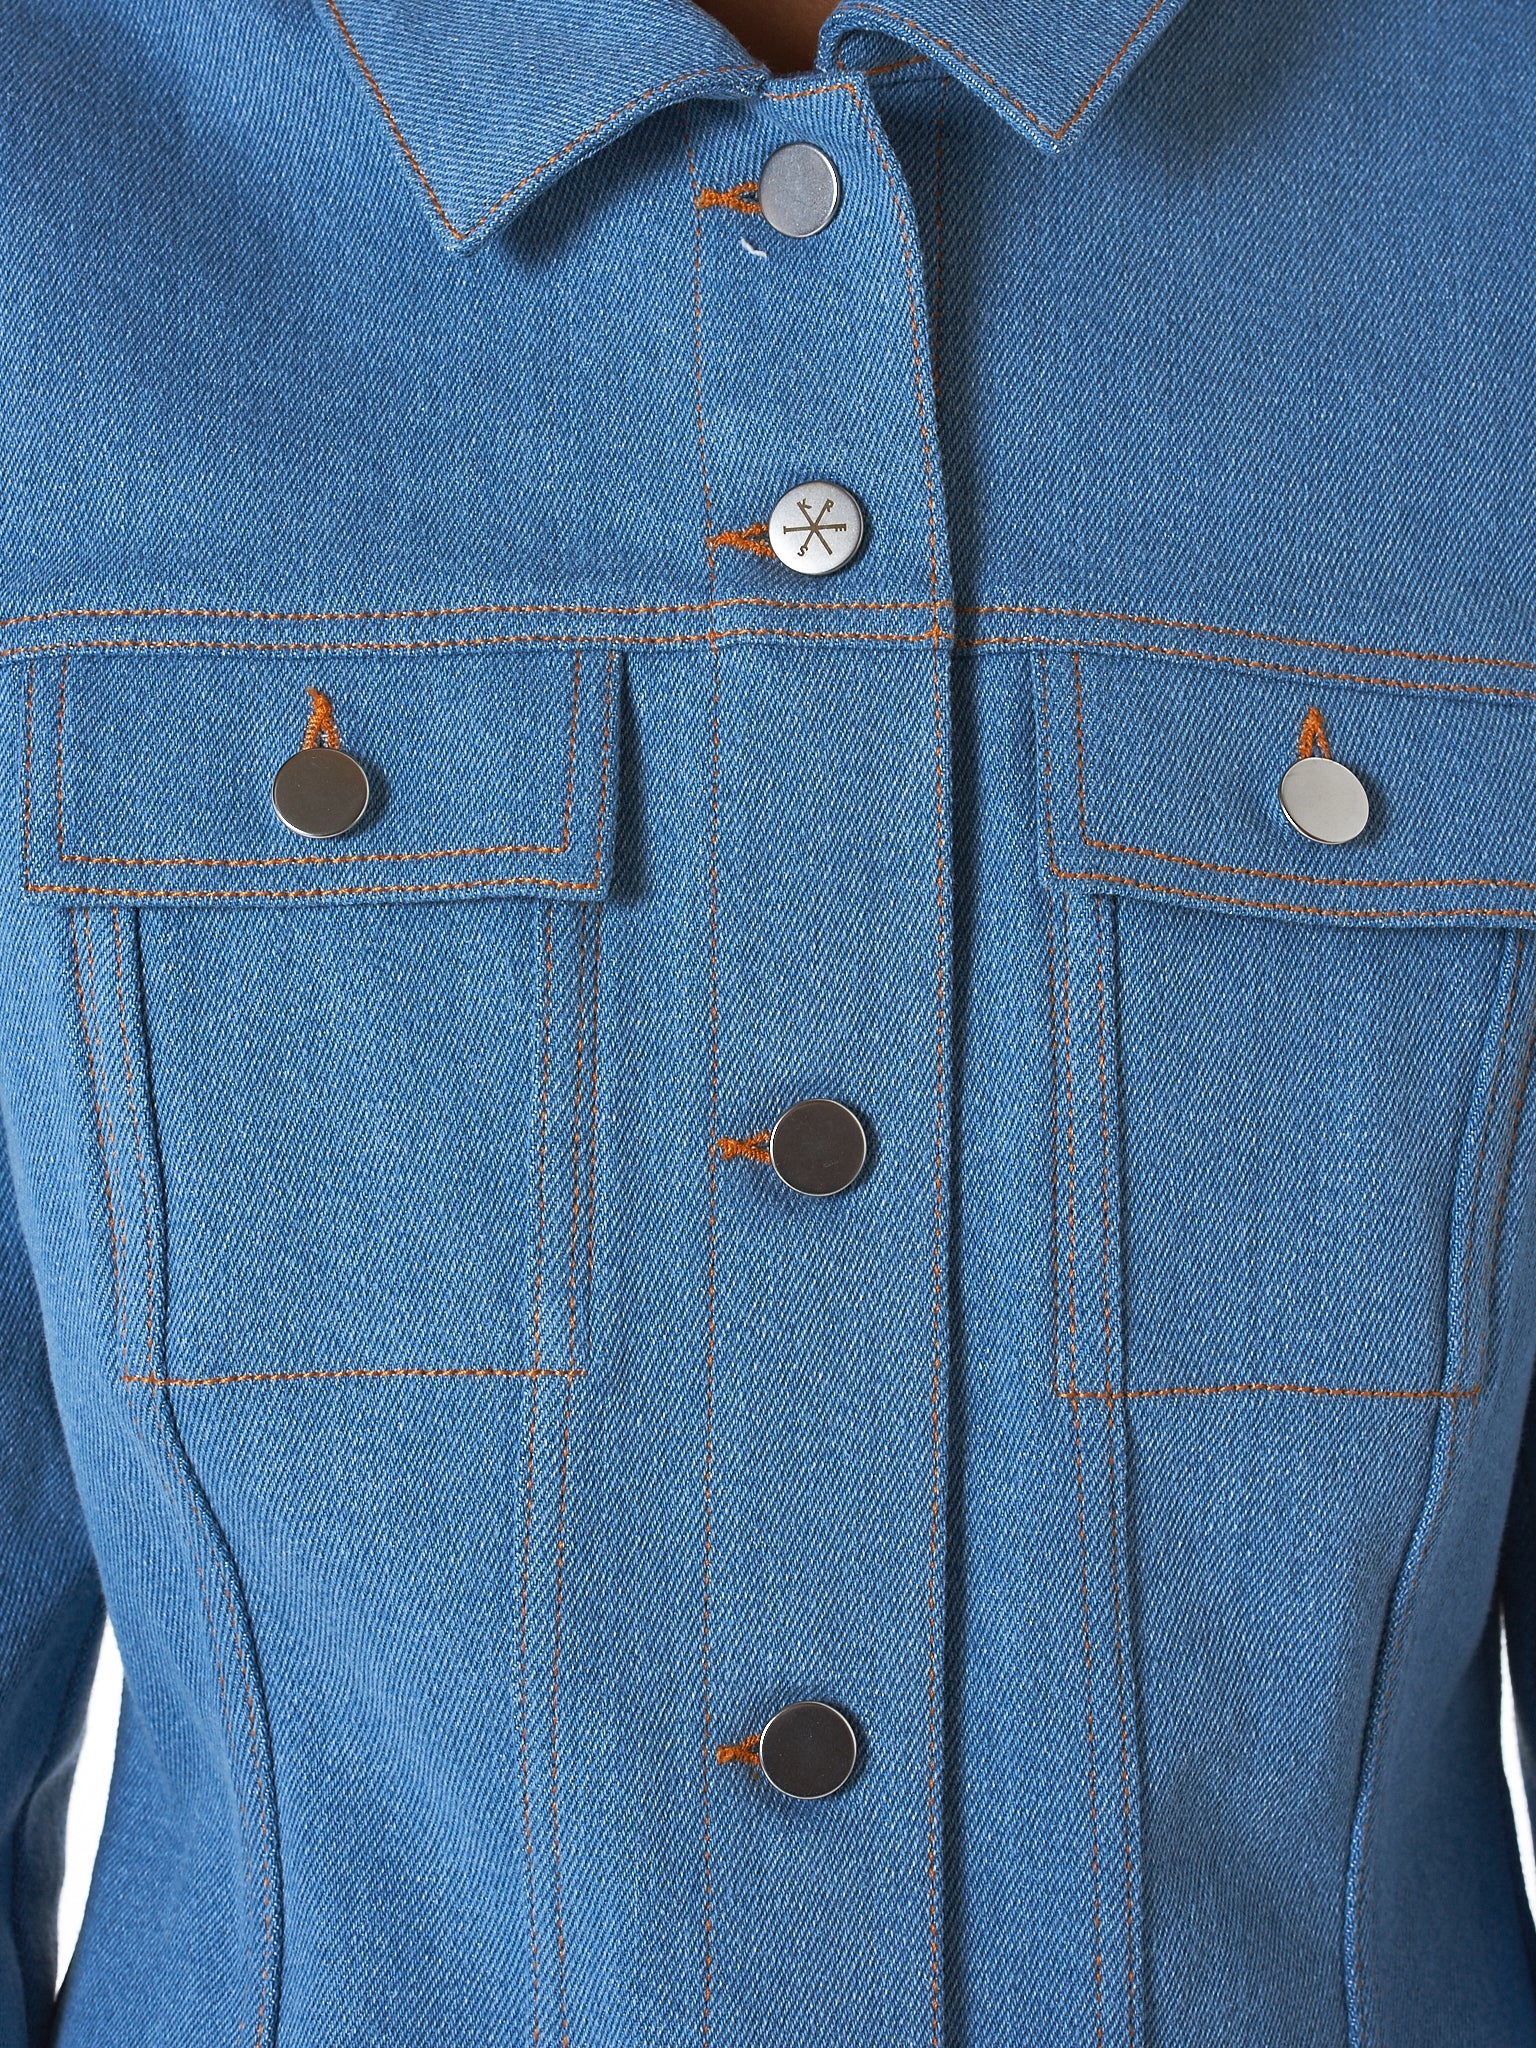 Kreist Denim Jacket - Hlorenzo Detail 2